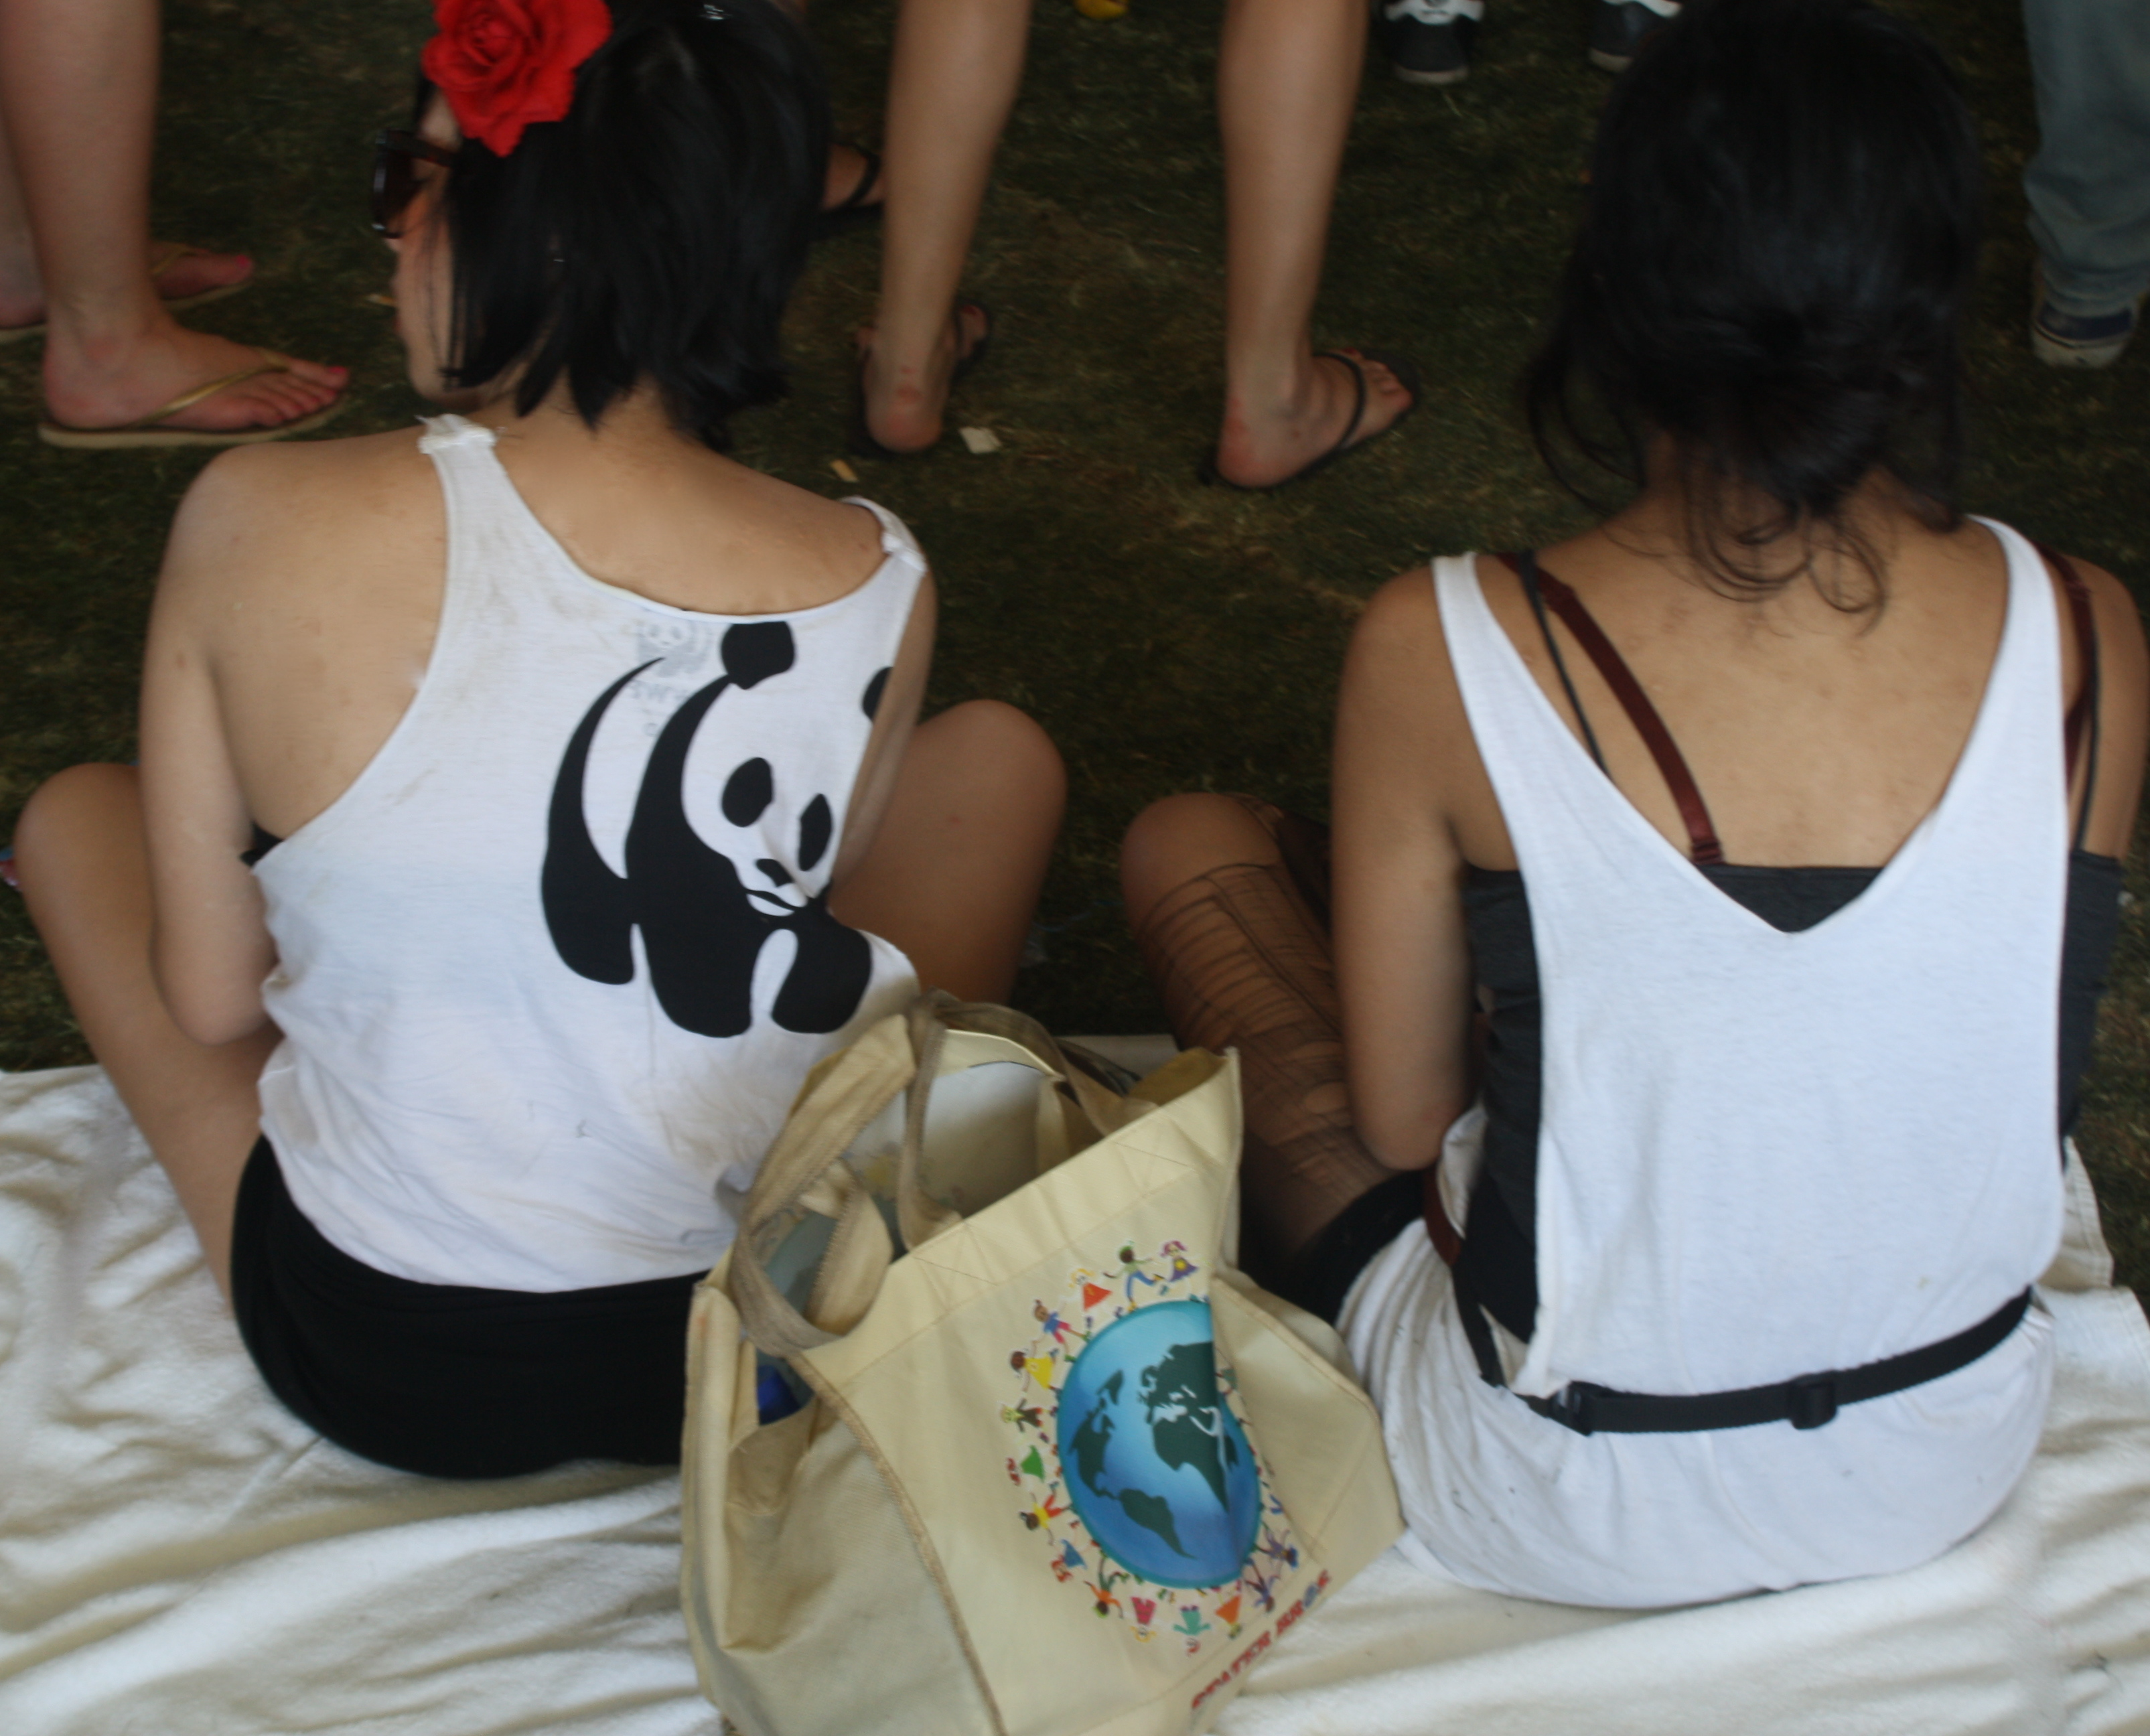 T shirt design qld - A Nice Simple Panda Design On The Right Shoulder A Striking T Shirt